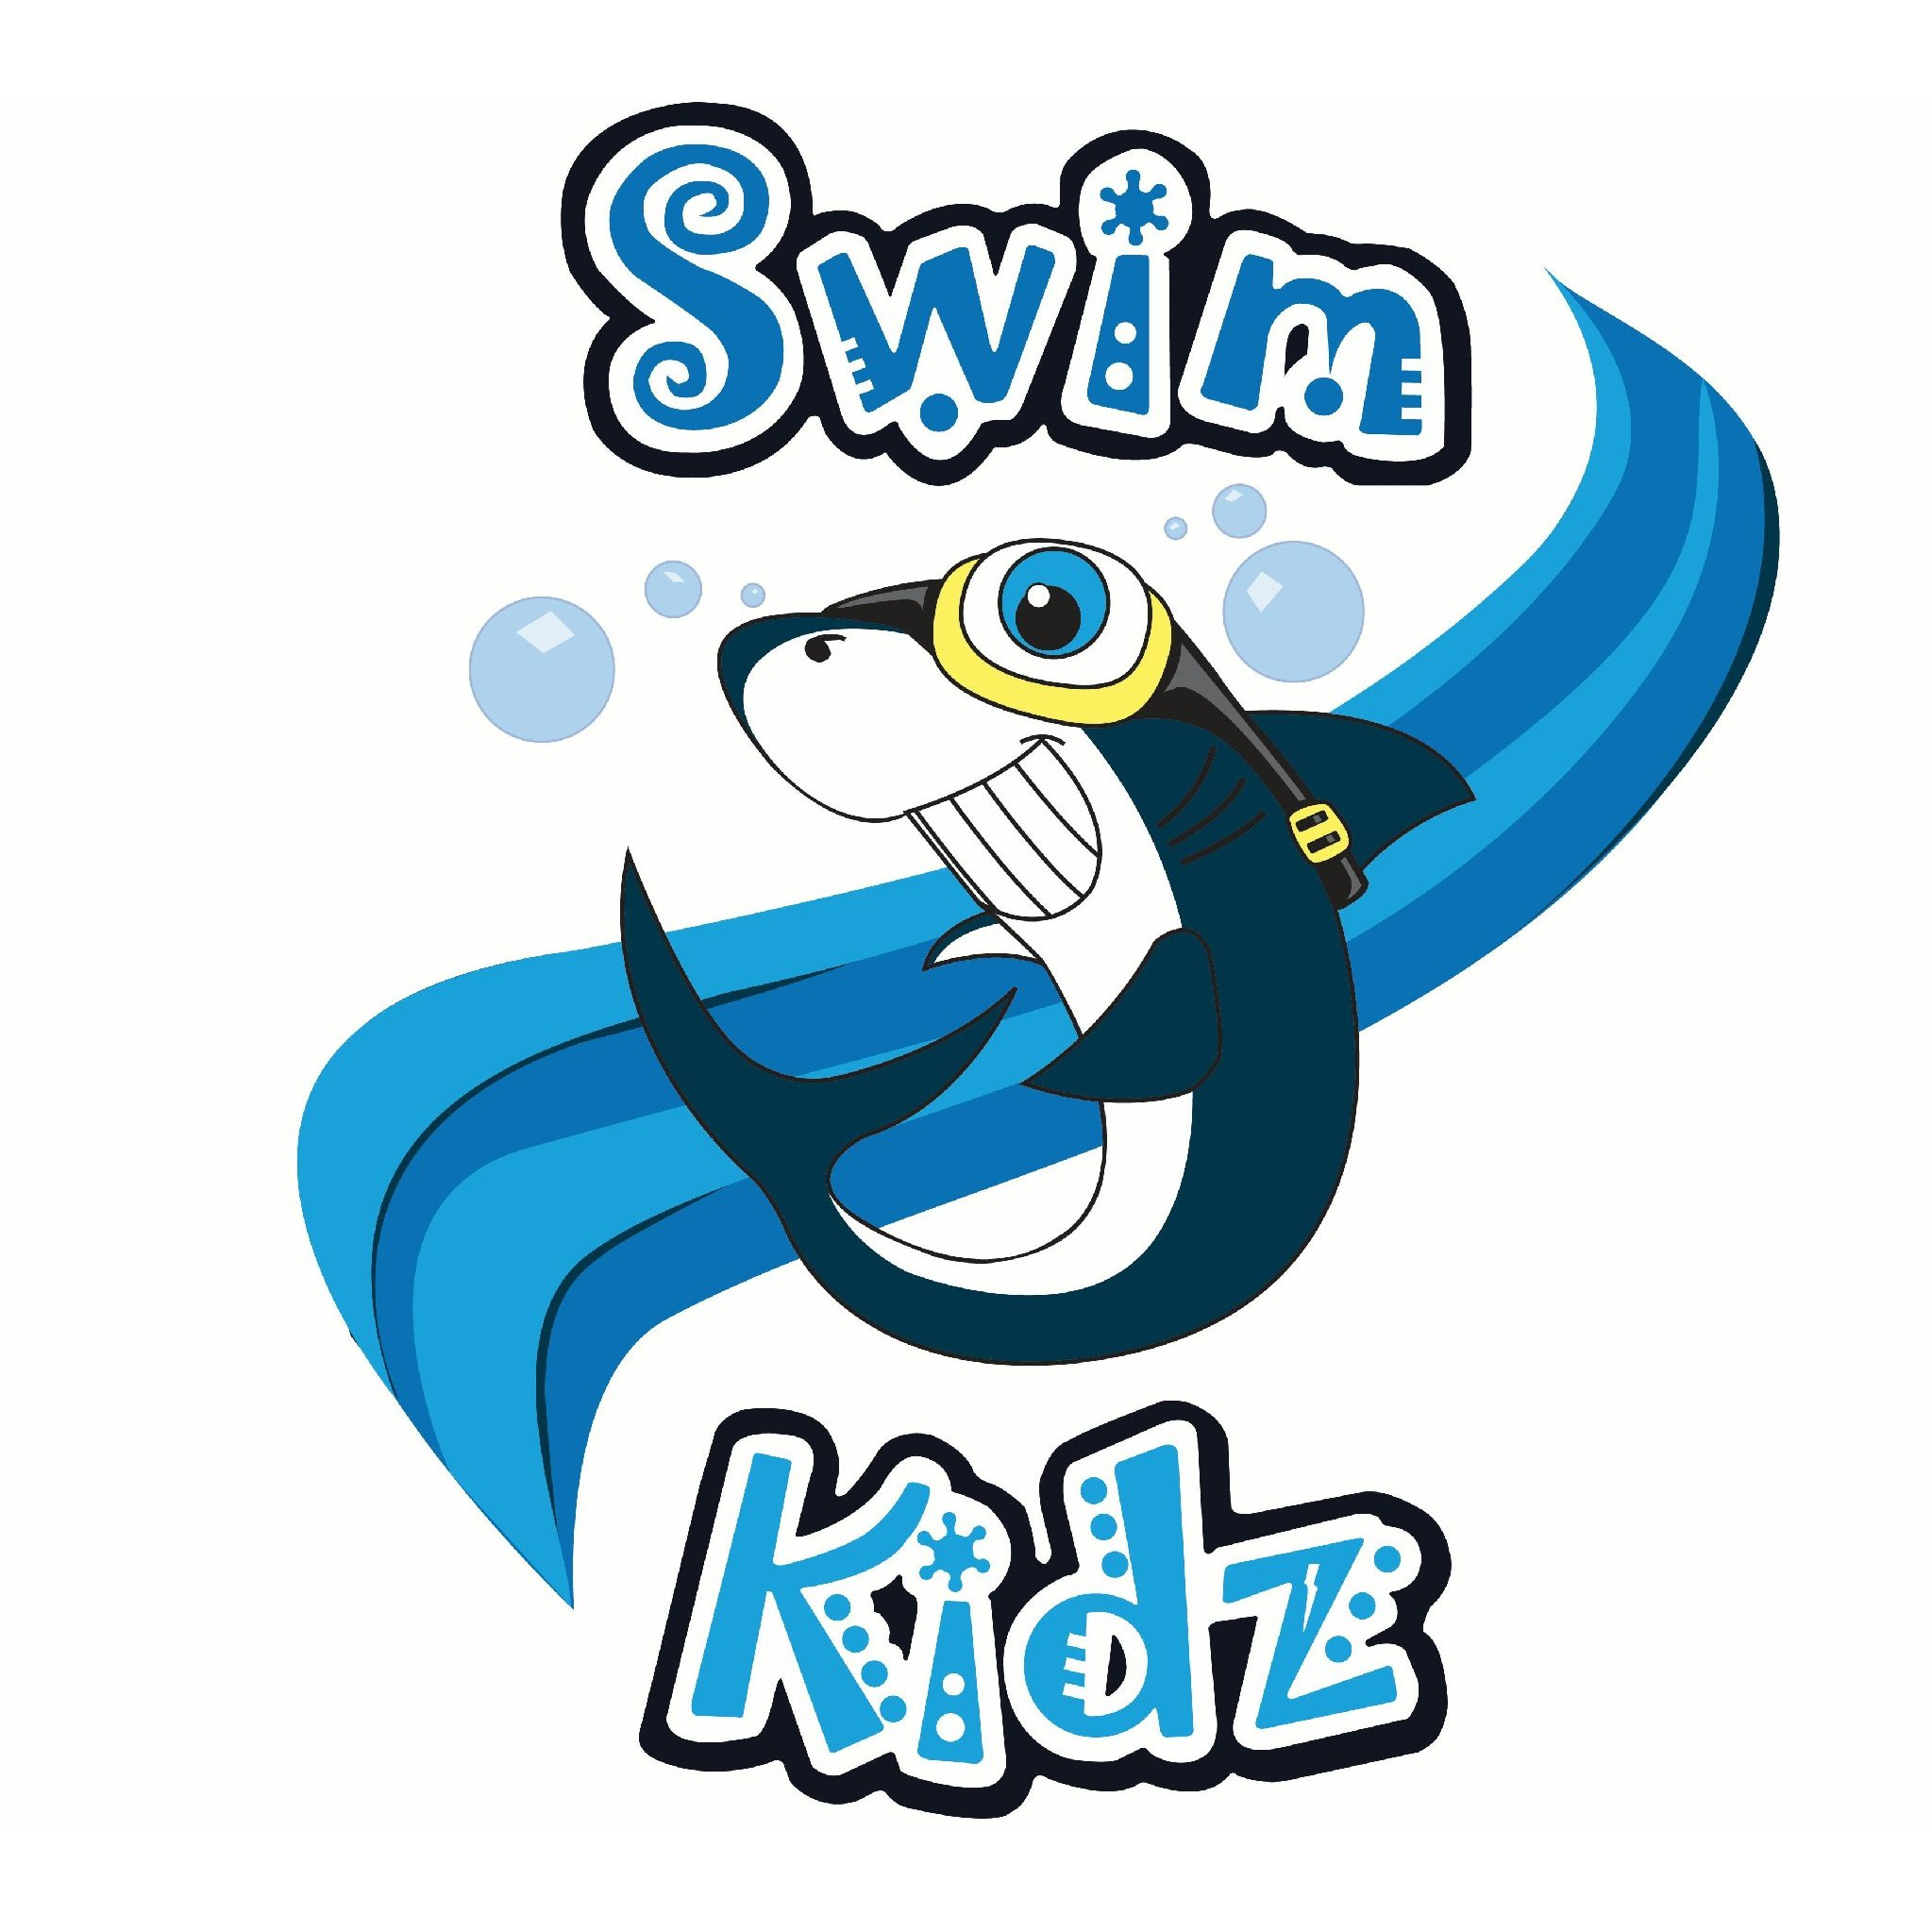 Swimkidz west london watersport activities in wembley - Bletchley swimming pool opening times ...